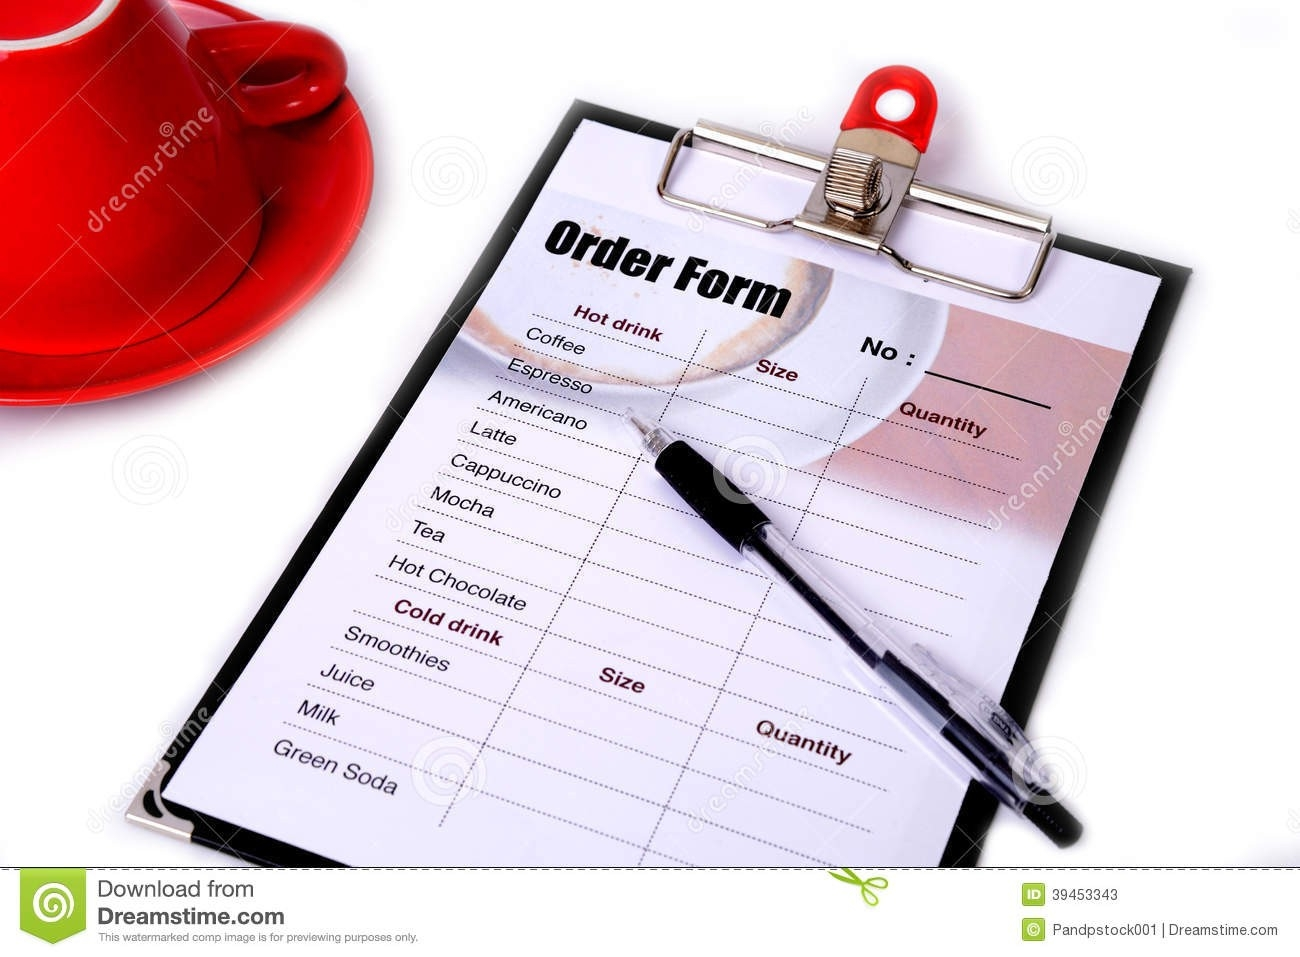 Order Form And A Pen. Stock Image. Image Of Drink, Clipboard inside Order Form Clipart 25190